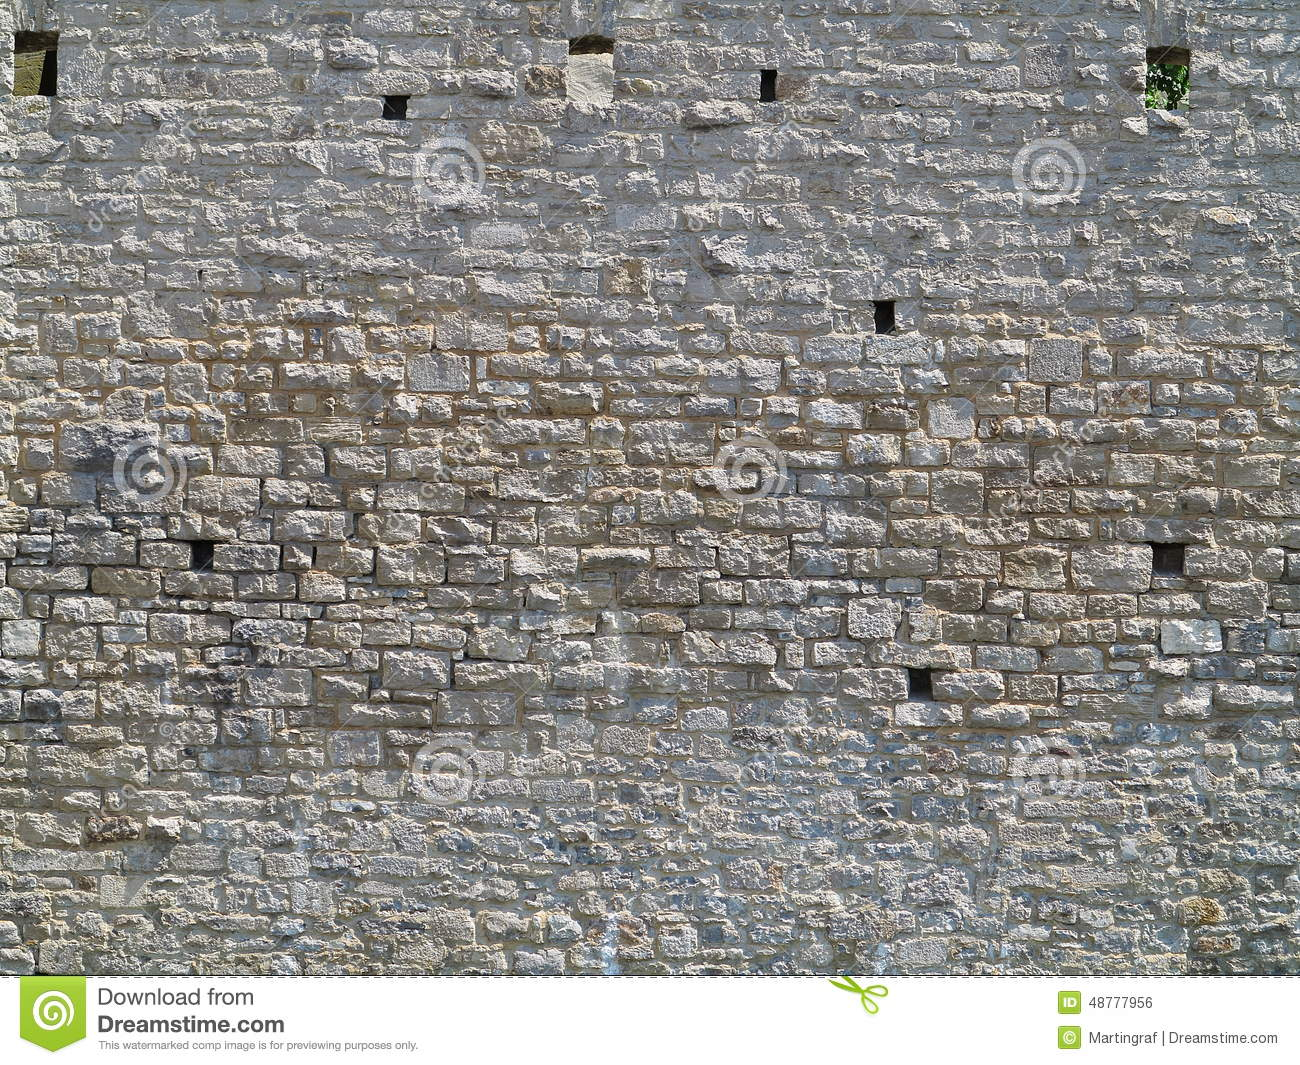 Medieval stone wall texture. Medieval Stone Wall Texture Stock Photo   Image  48777956